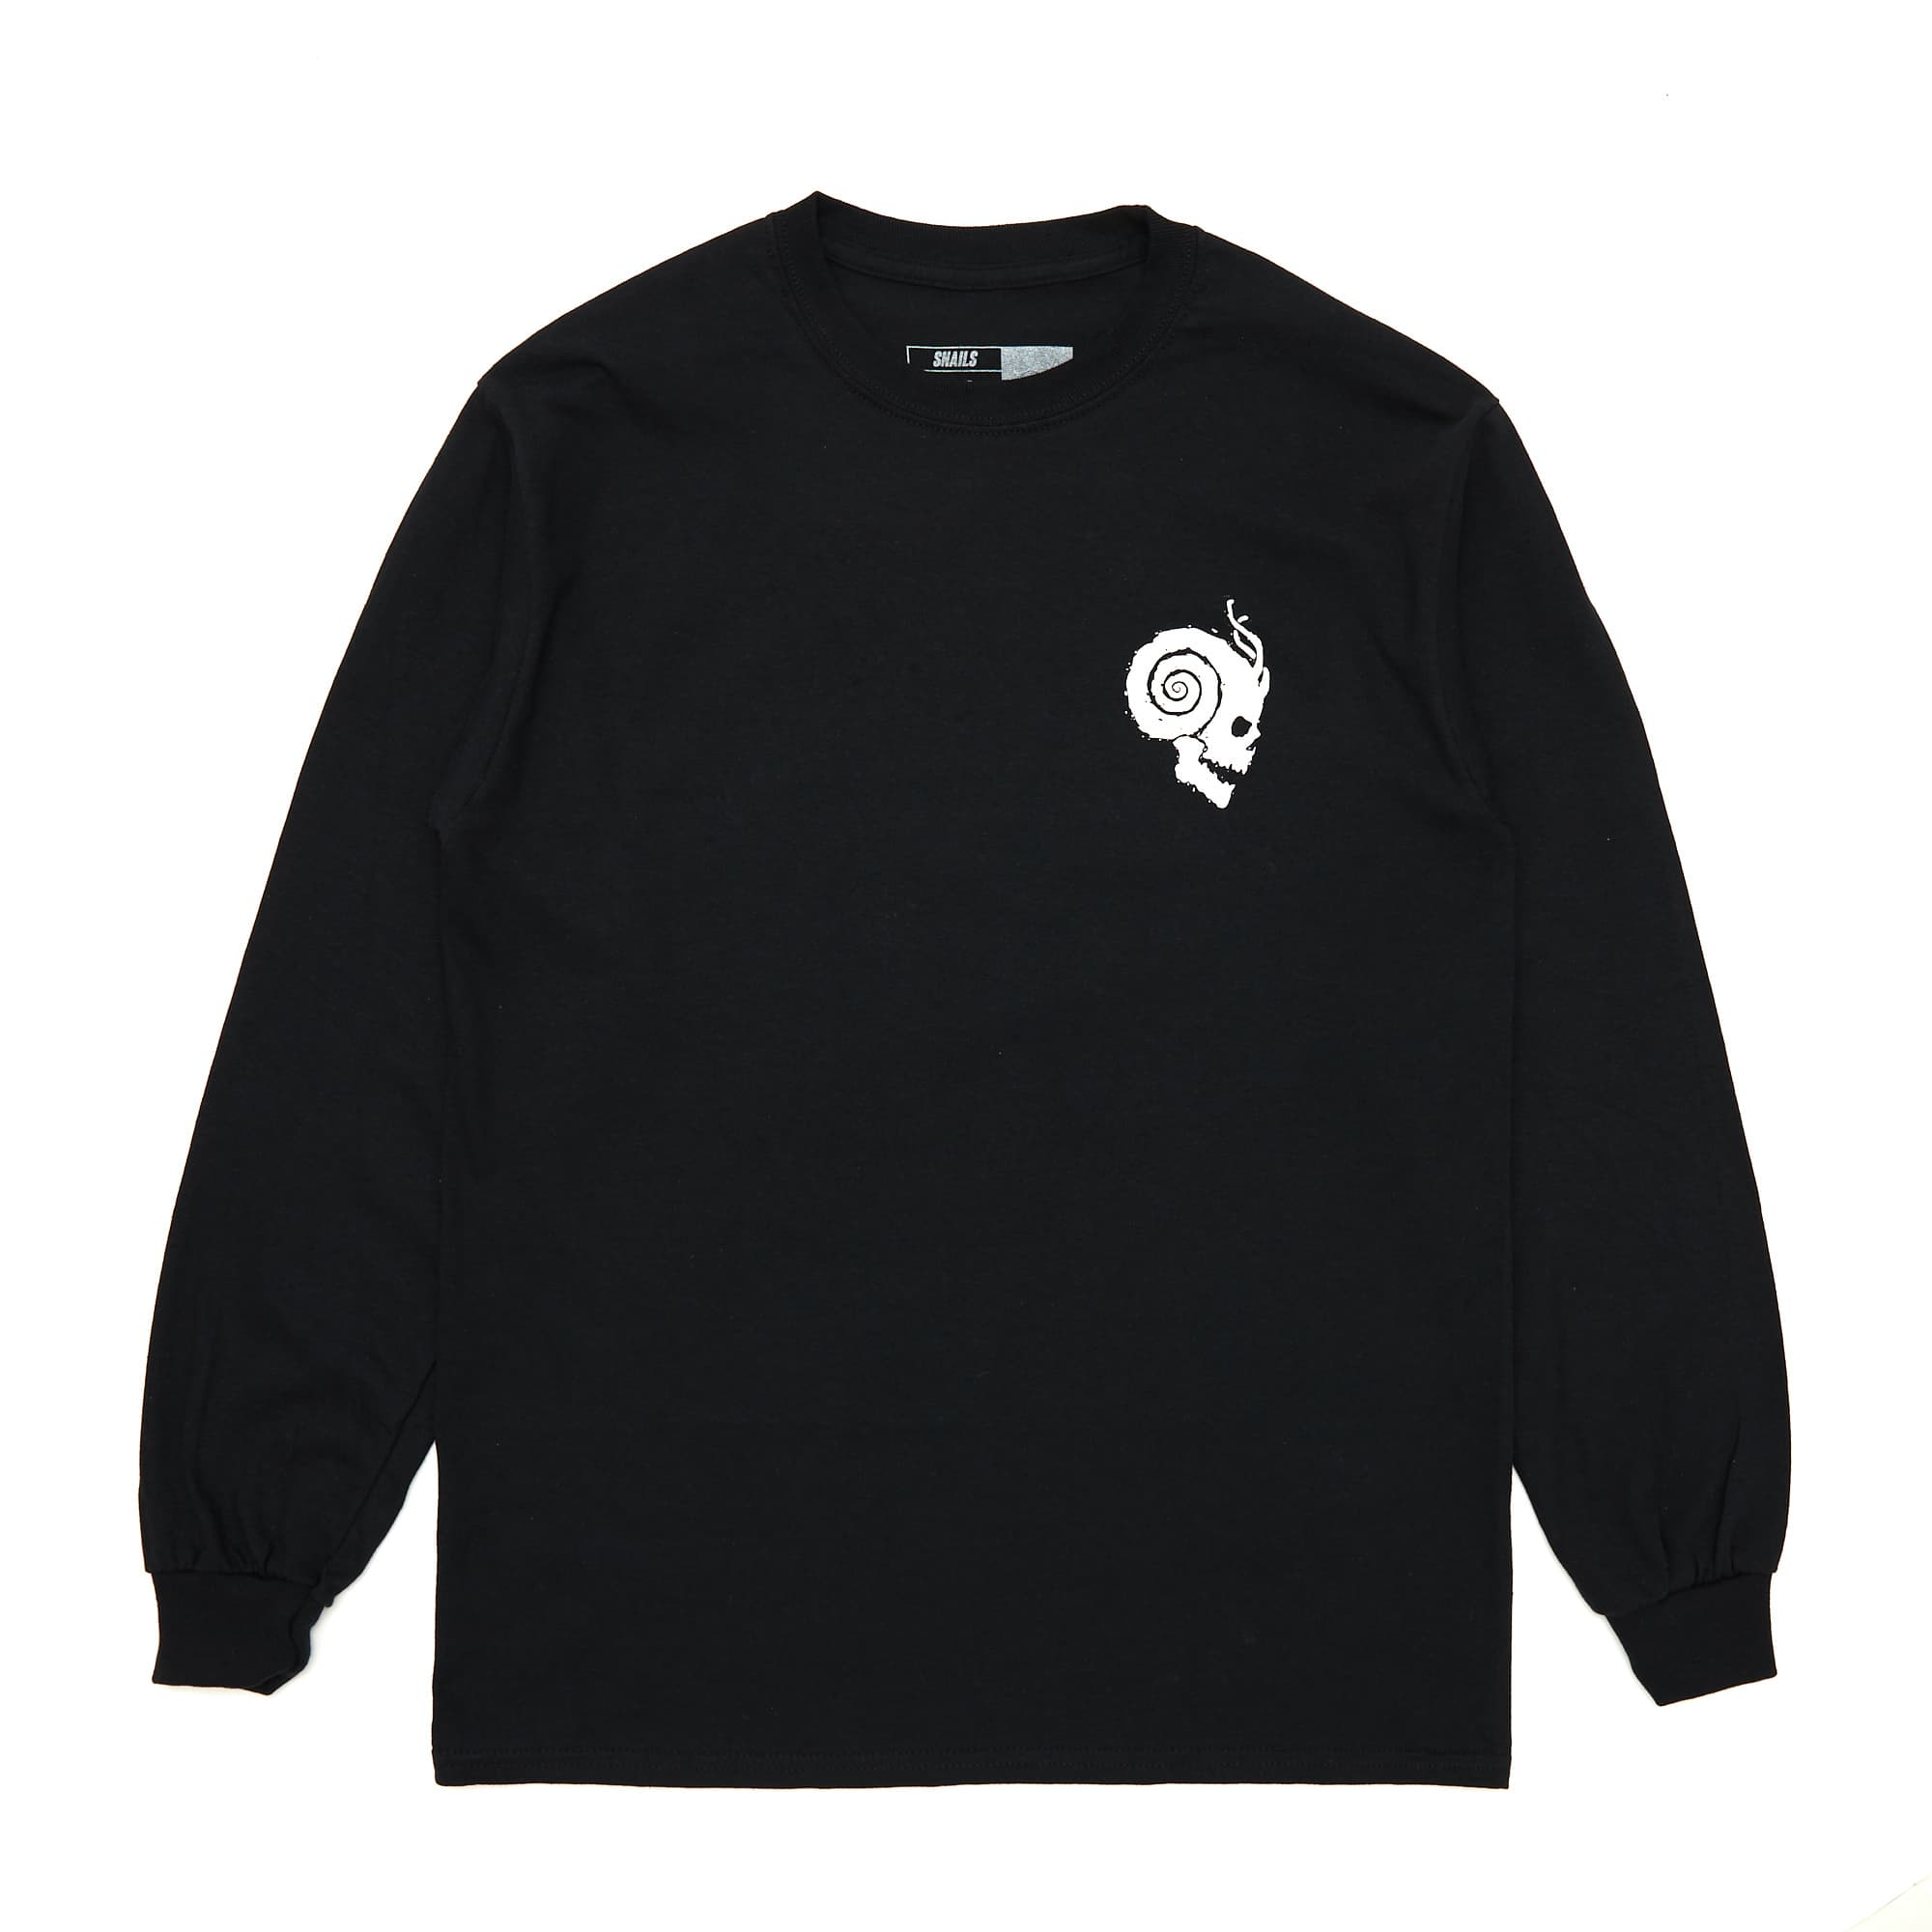 'Slugz Music' Long Sleeve Tee